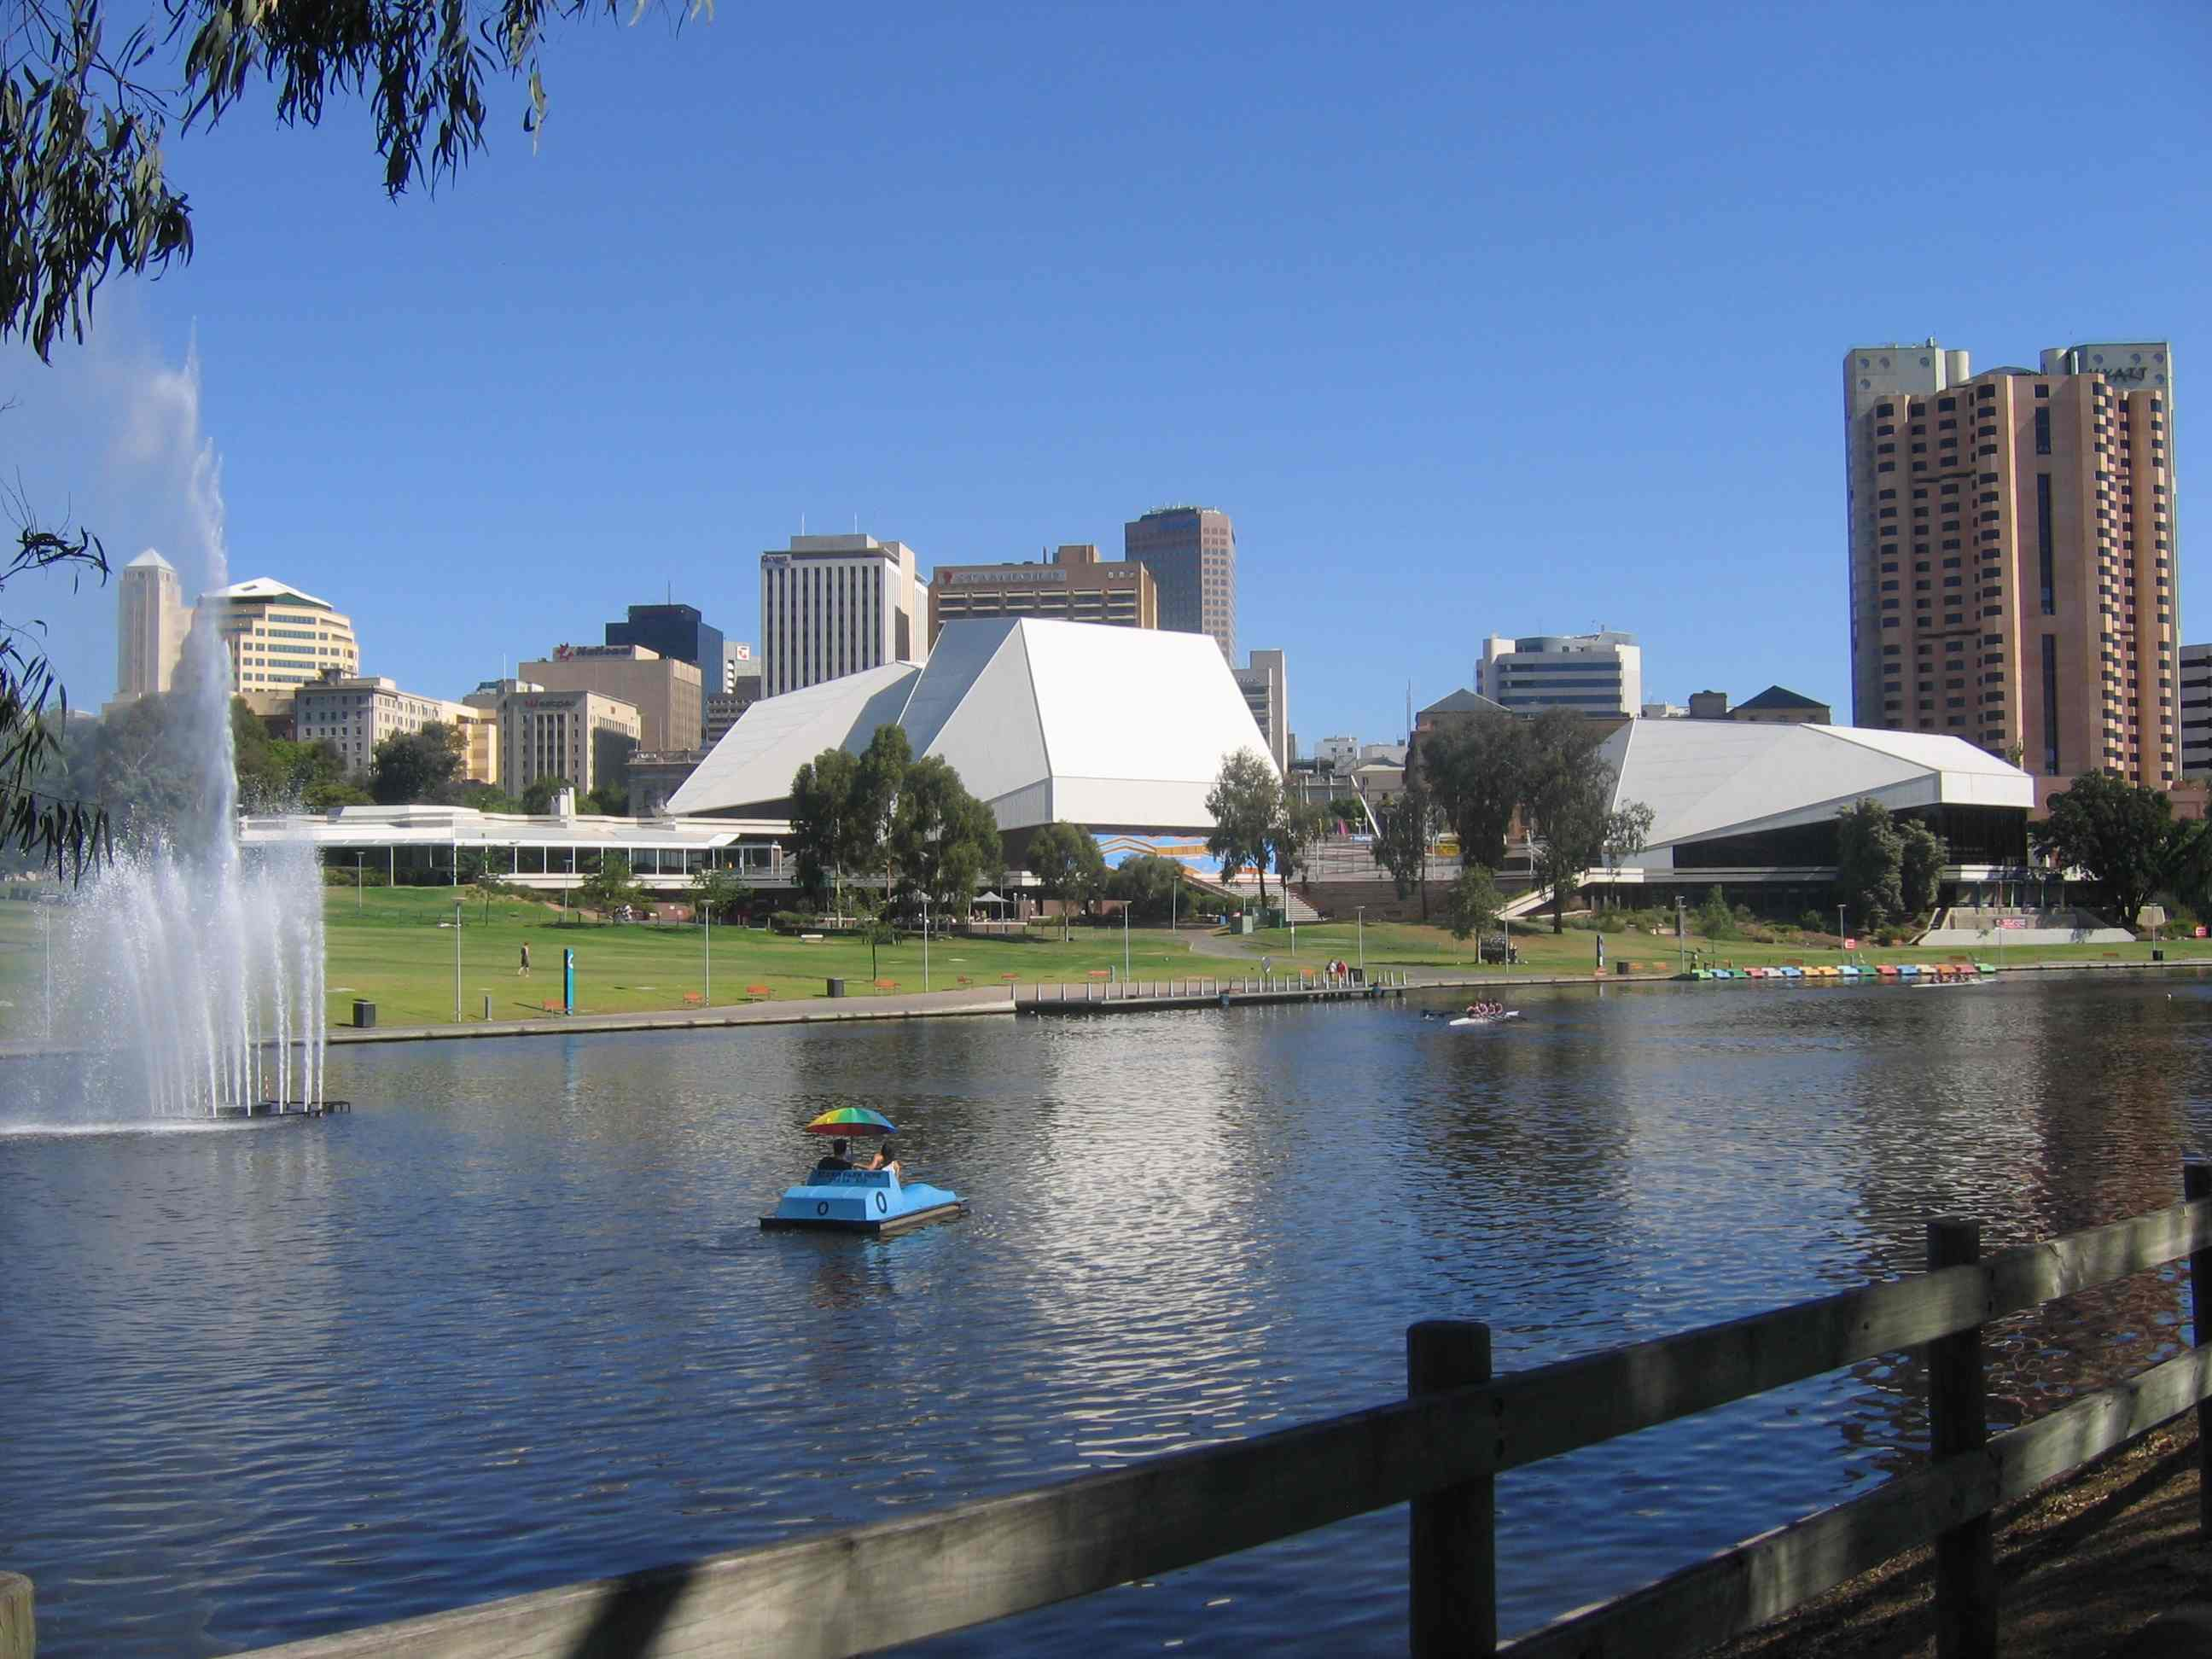 River Torrens Festival Centre